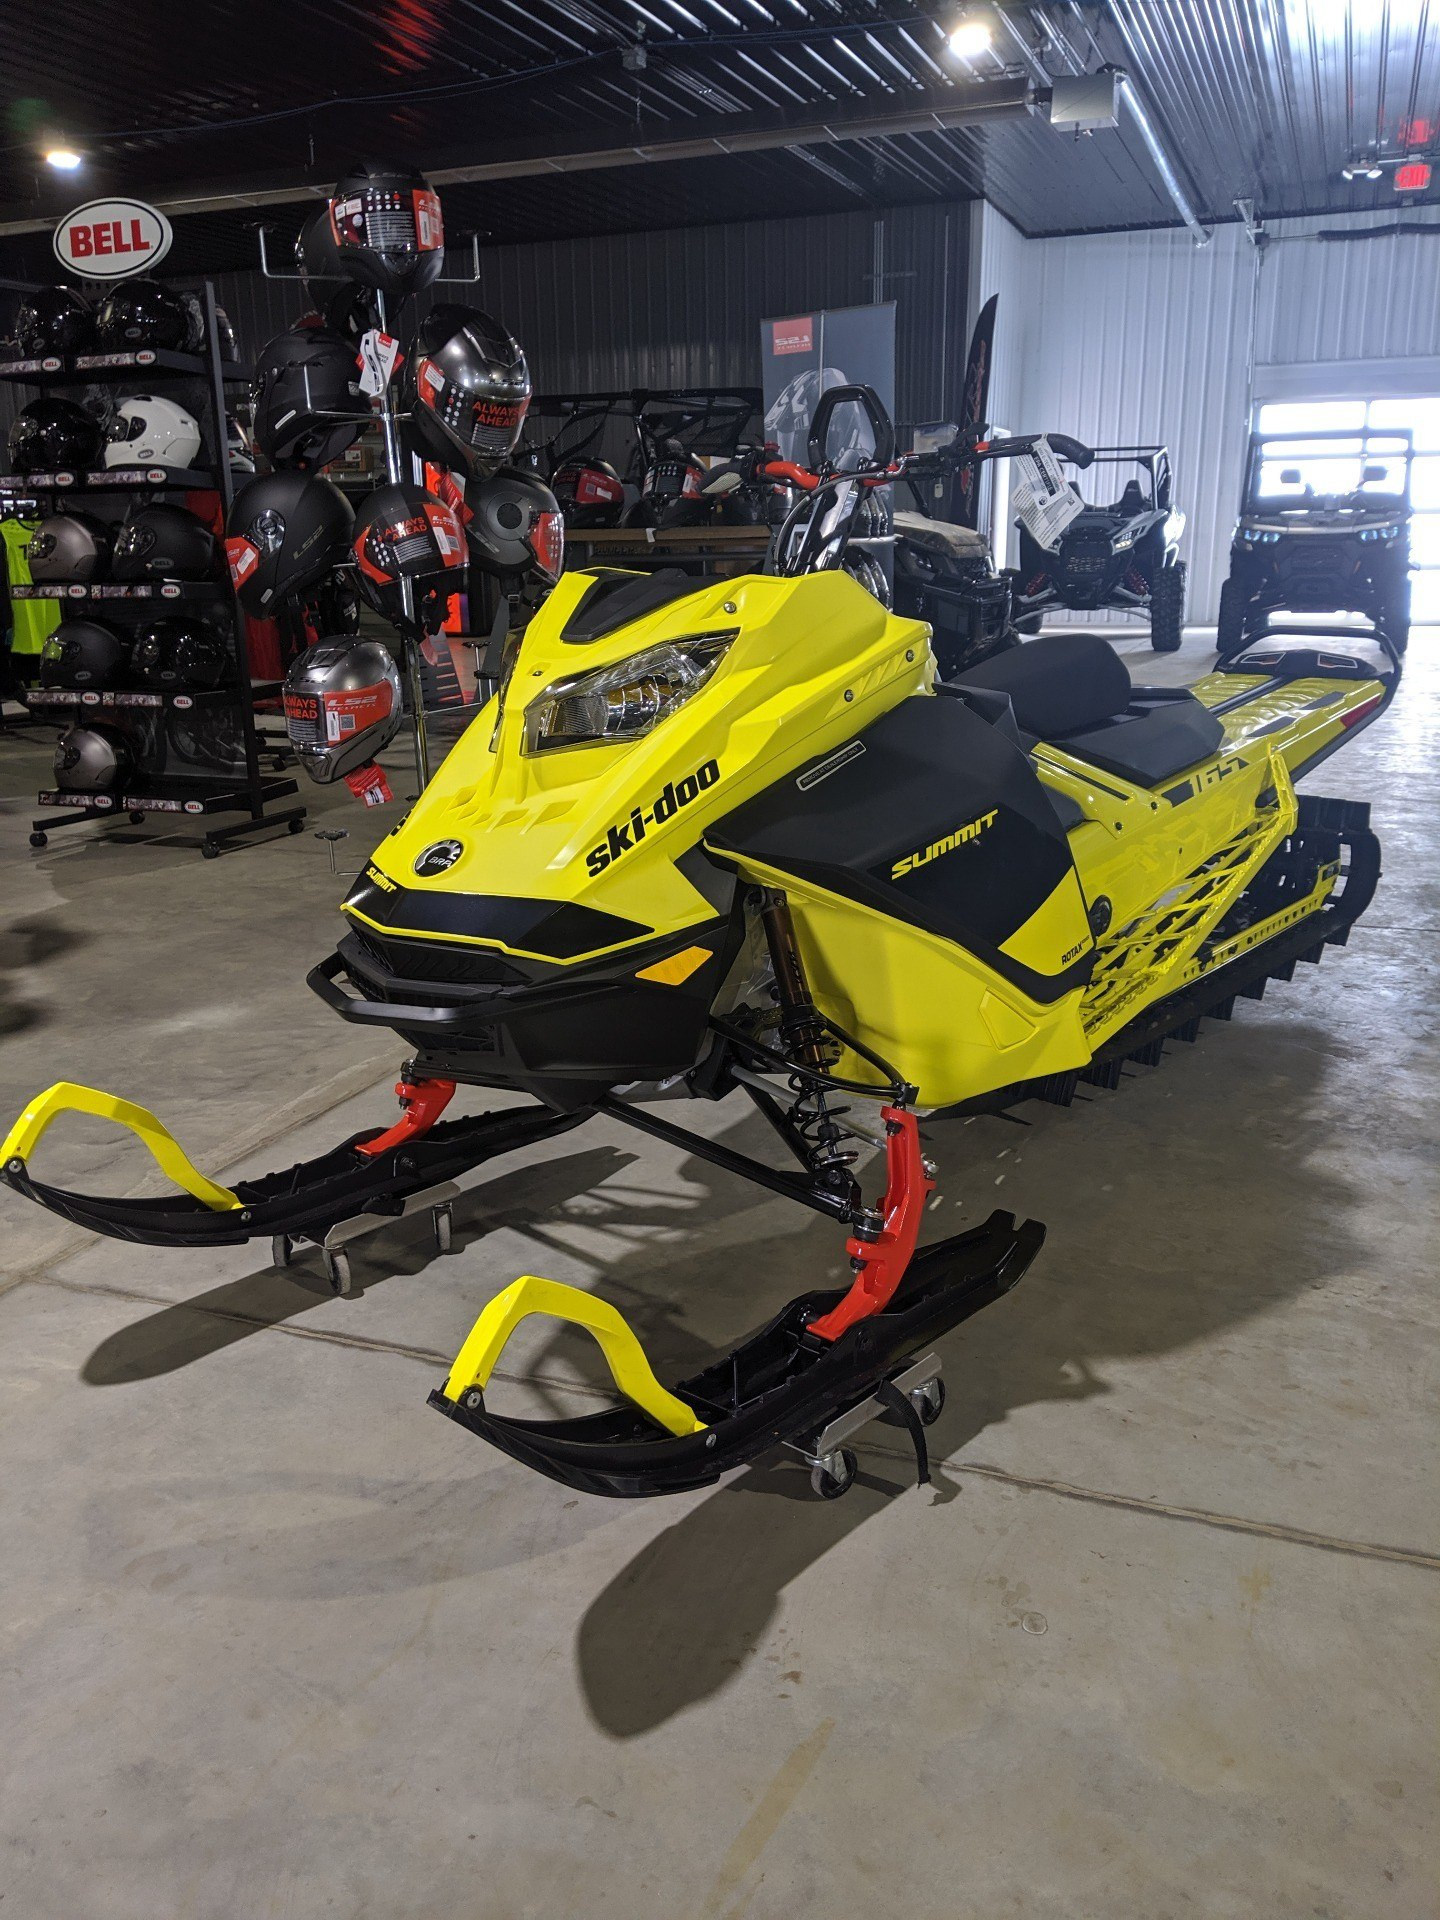 2020 Ski-Doo Summit 165 850 E-TEC Turbo SHOT in Cedar Falls, Iowa - Photo 1